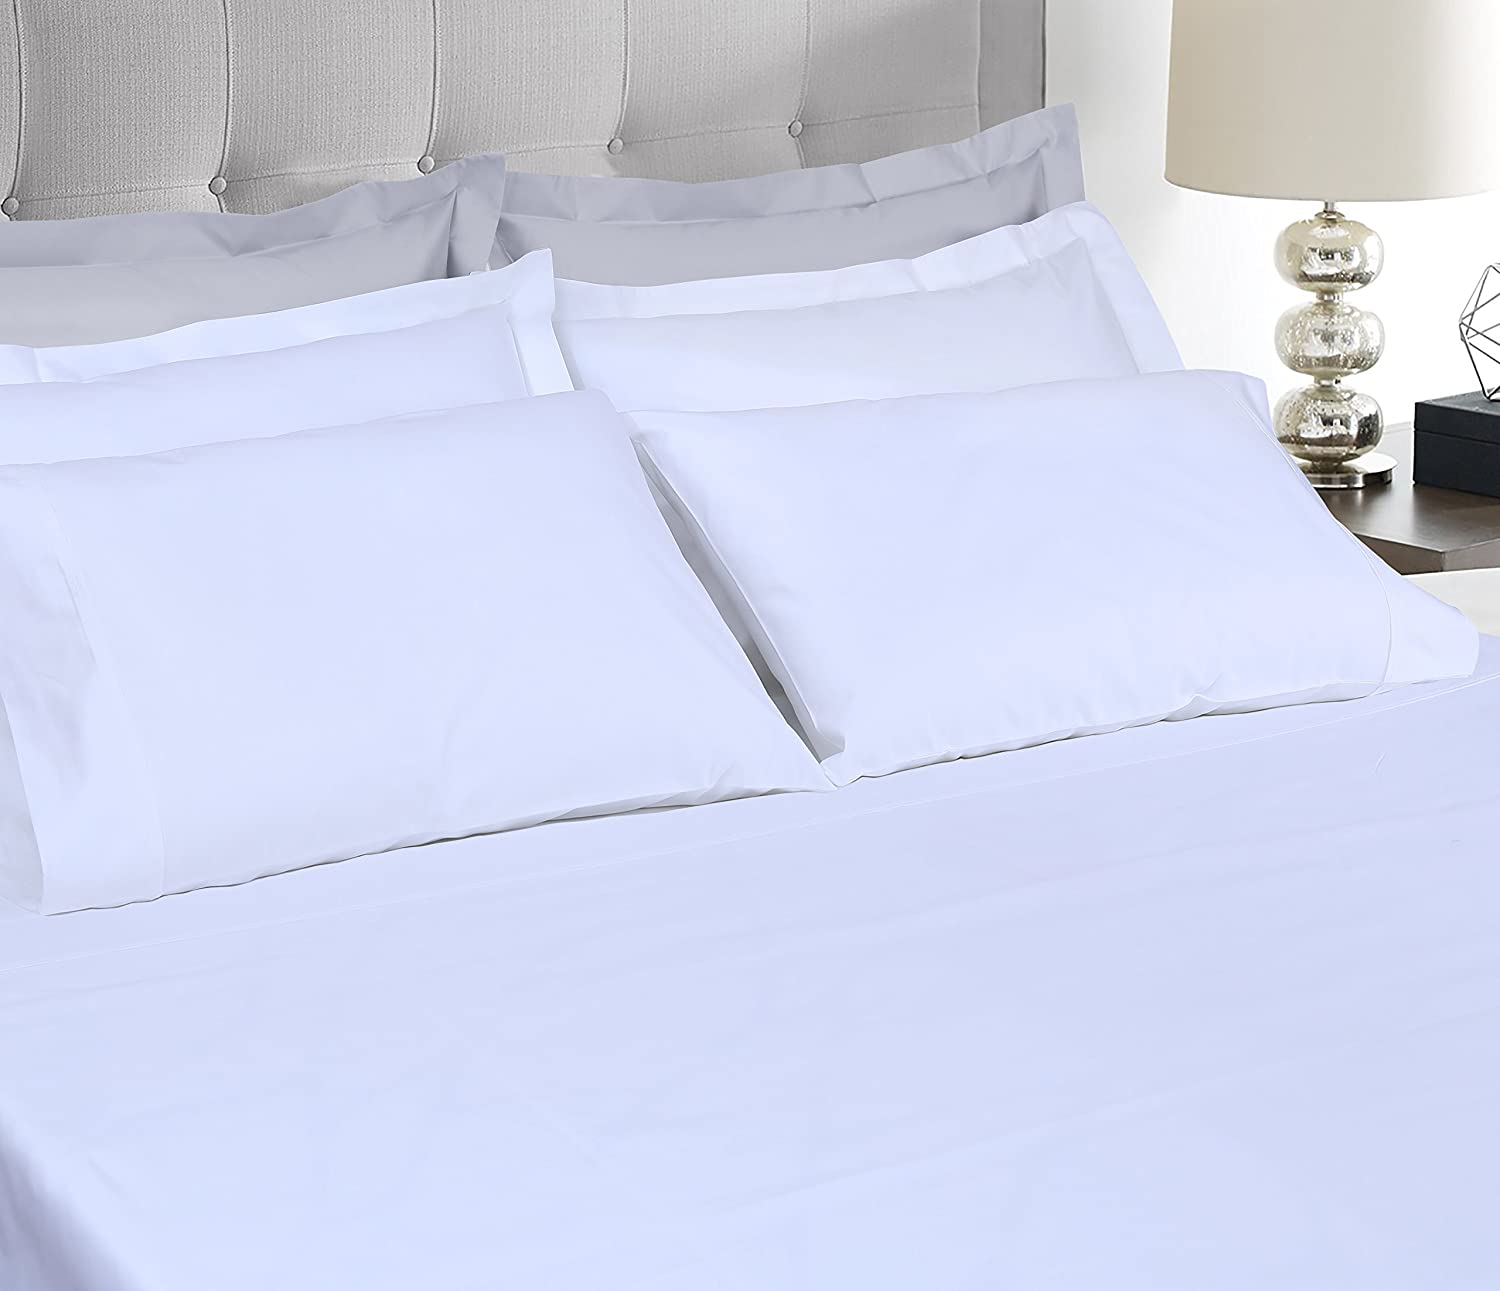 600 Thread Count Cotton Sheets White King & Cotton Blanket Blue King Size Combo